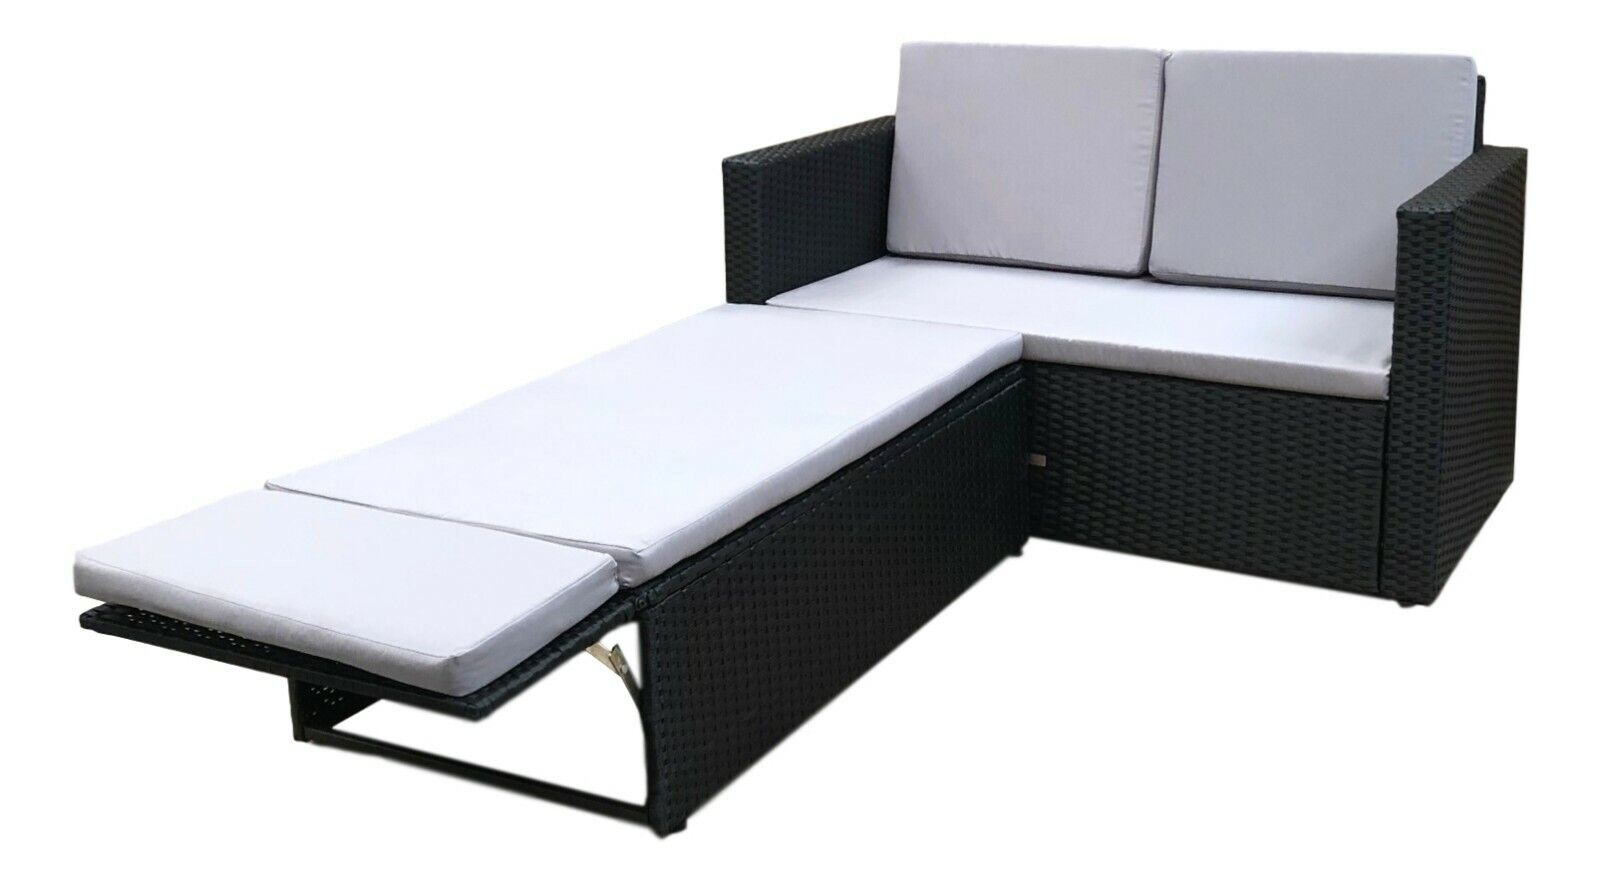 Garden Furniture - Rattan Outdoor Garden Sofa Furniture Love Bed Patio Sun bed 2 seater Black